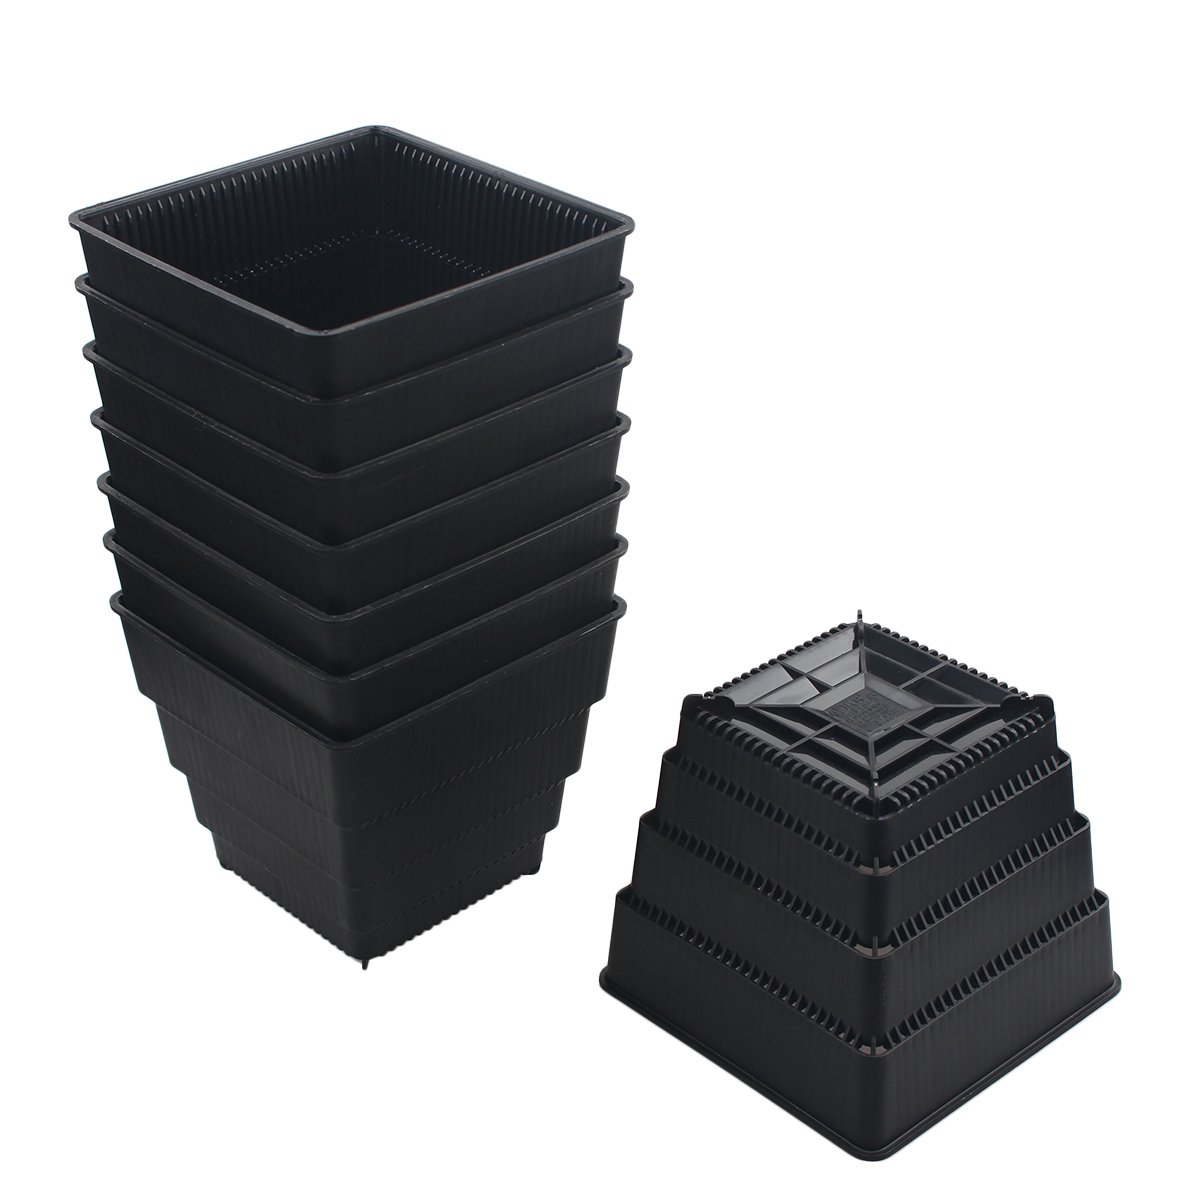 BangQiao 4.95 Inch Plastic Square Flower and Succulent Nursery Plant Pot/Planter/Container,Pack of 8 (L, Black)